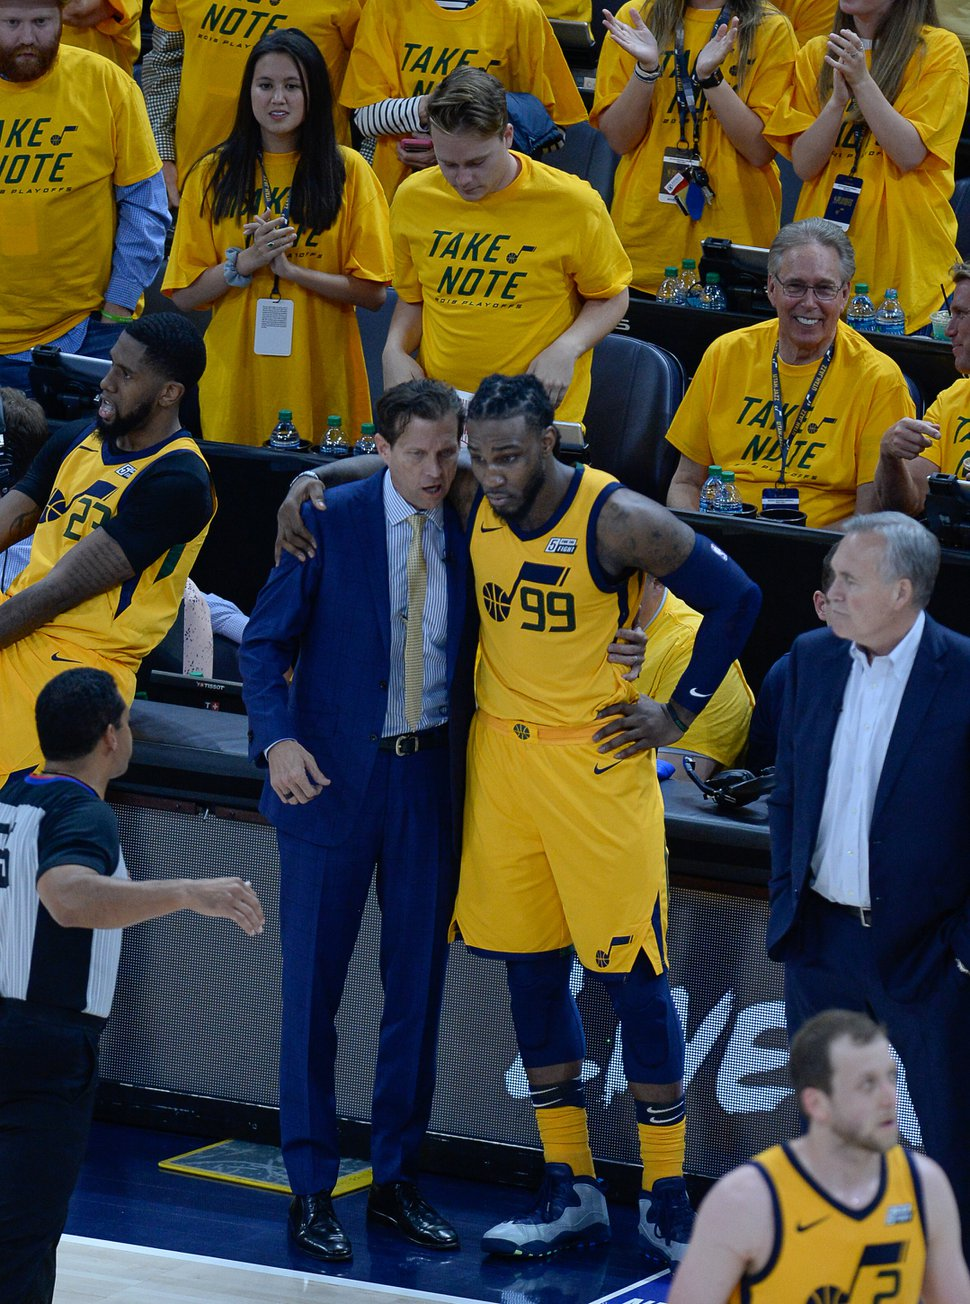 (Francisco Kjolseth | The Salt Lake Tribune) Utah Jazz coach Quin Snyder speaks with Utah Jazz forward Jae Crowder (99) during the final minutes of their game against the Houston Rockets in Game 4 of the NBA playoffs at the Vivint Smart Home Arena Sunday, May 6, 2018 in Salt Lake City. Houston took a 3-1 series lead over the Jazz with a final score of 100 to 87.